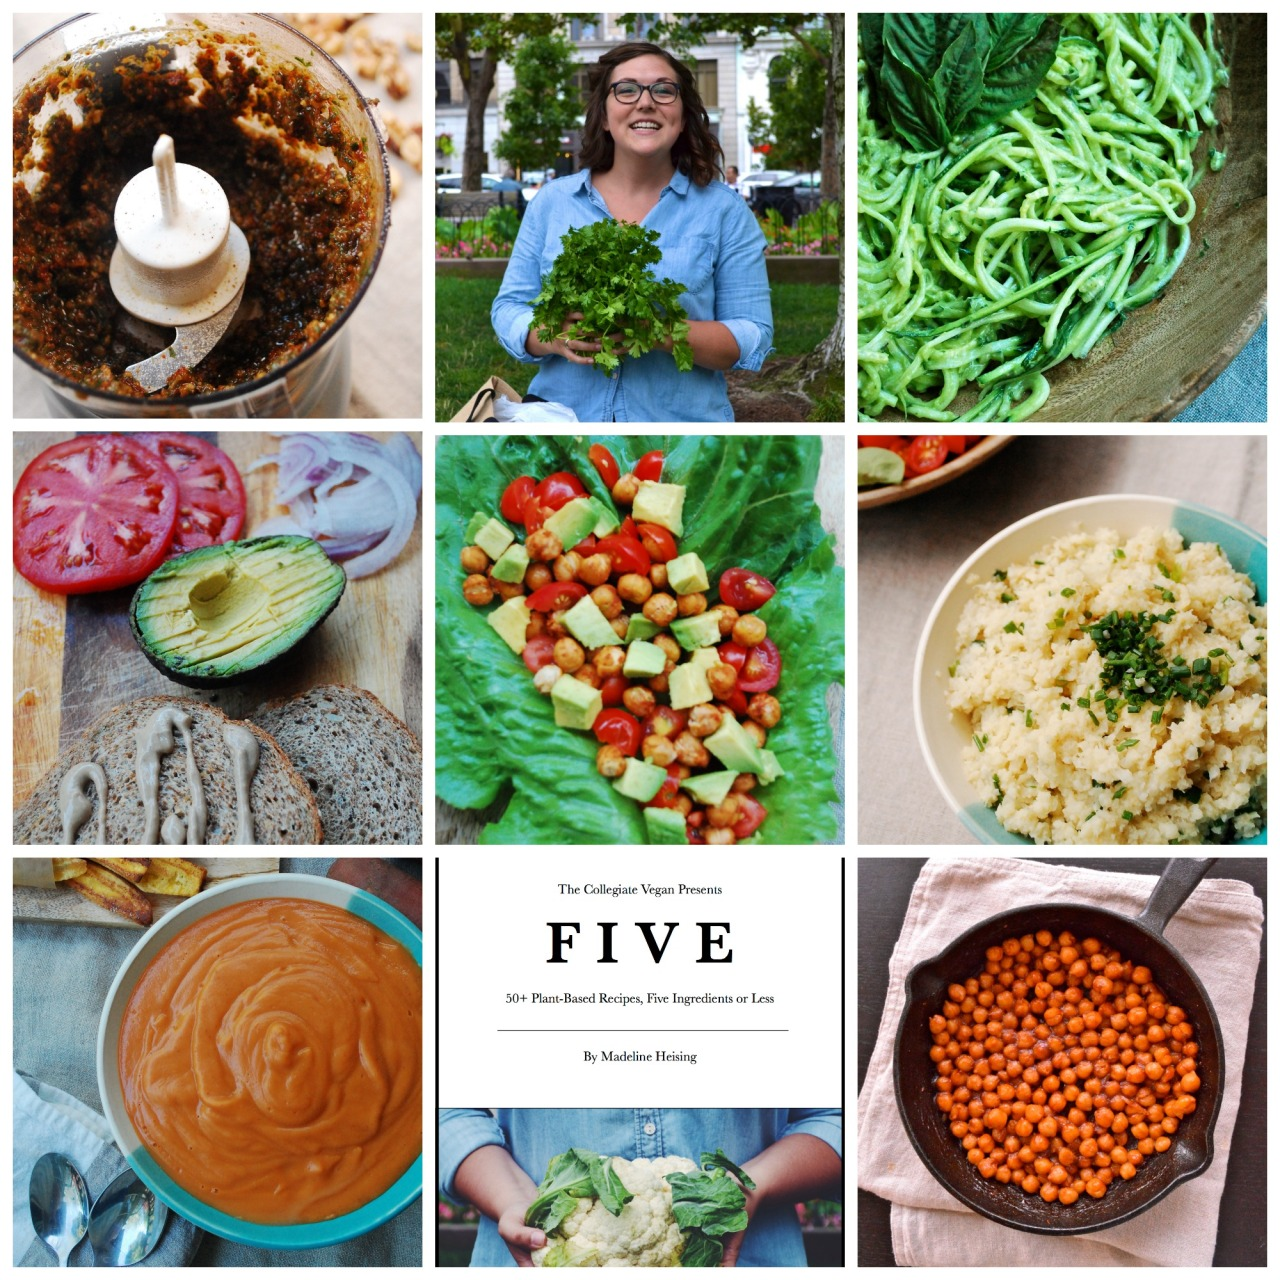 """The day is finally here! I have released my debut eCookbook """"The Collegiate Vegan Presents: FIVE, 50+ Plant-Based Recipes, Five Ingredients or Less."""" In the eBook you'll find: A time and money saving guide A """"how-to"""" meal planning guide A plant-based transition guide 53 recipes with 70 photographs 53 vegan recipes, 46 gluten free recipes 43 recipes that take 30 minutes or less Designed for a college lifestyle (or for anyone looking to save time and money while still eating healthy)FIVEis available as an eBook download for only $2.99 (PayPal or credit cards) and can be read on any PDF-compatible digital device. Get your copy of FIVE here! Eat your veggies,Madeline"""